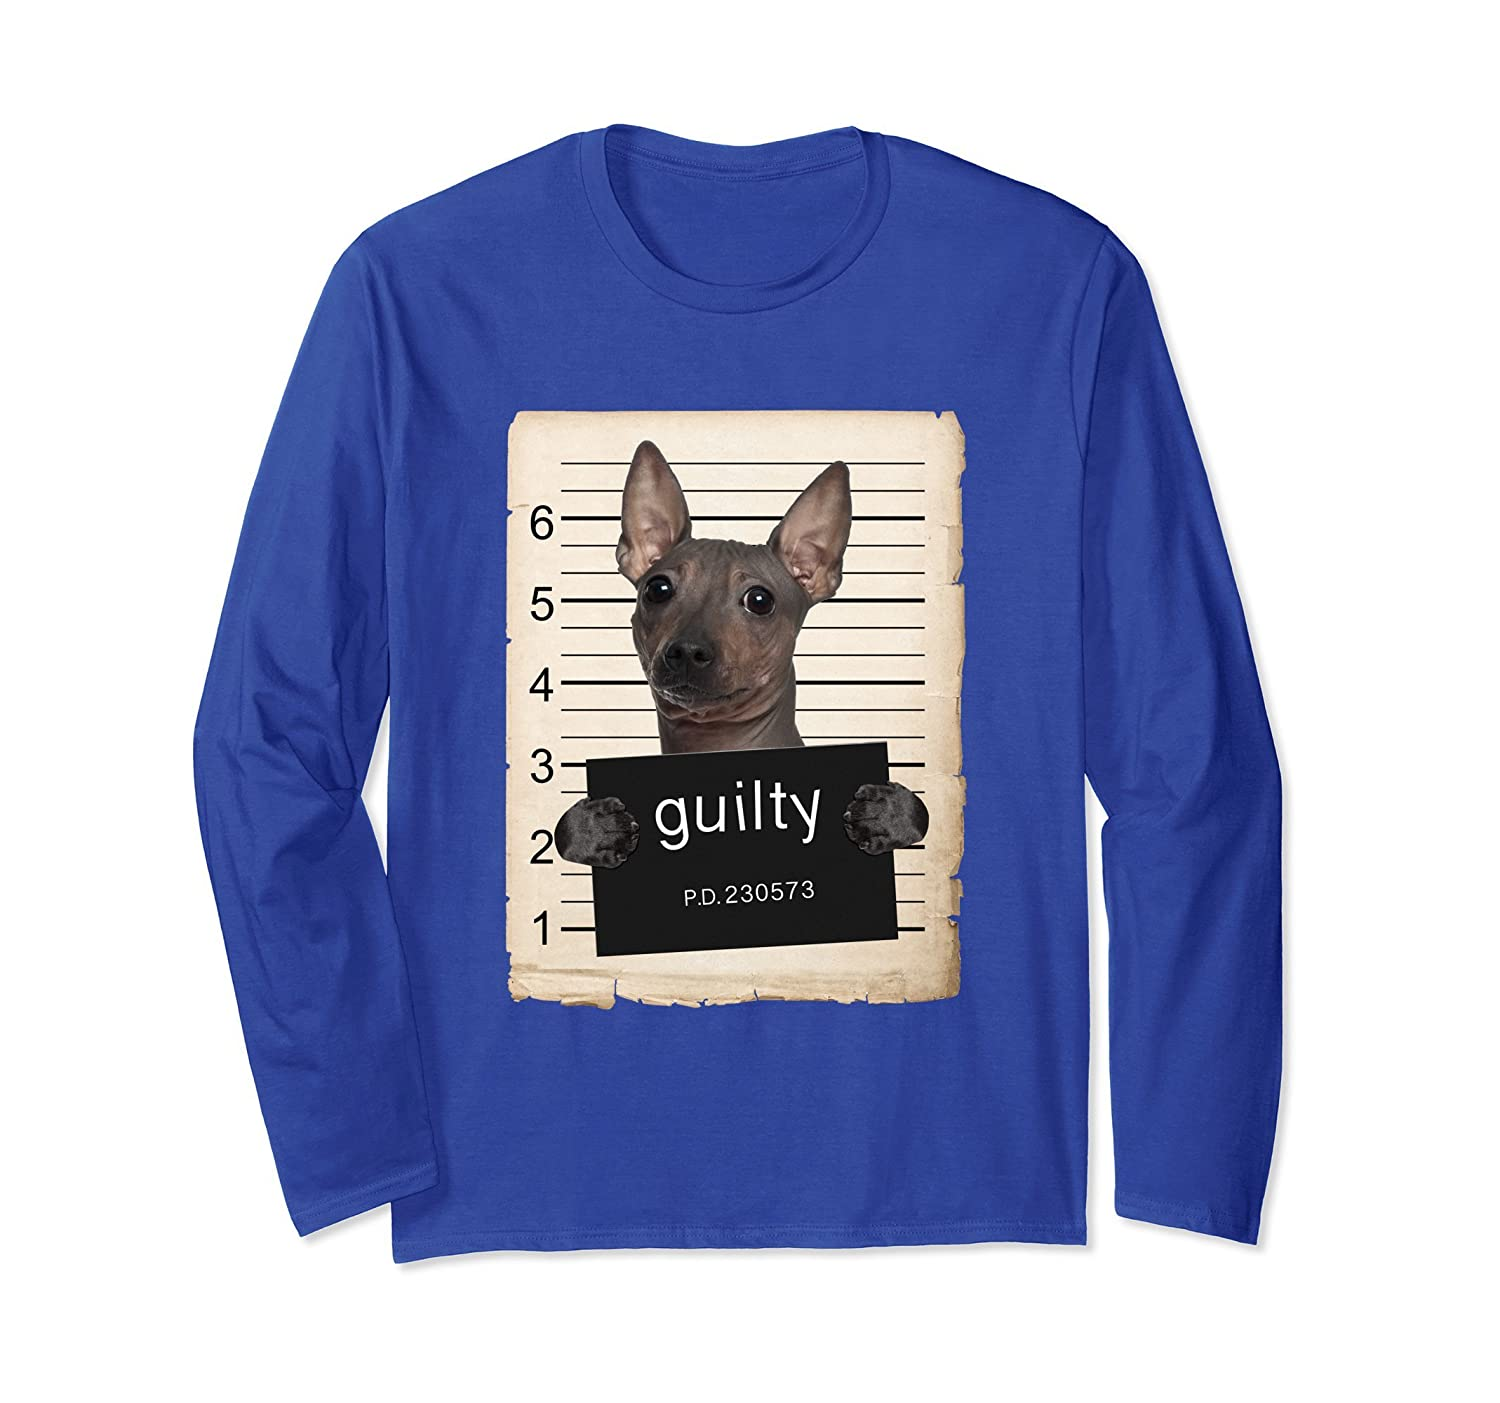 American Hairless Terrier Dog mug shot Long Sleeve Shirt-mt